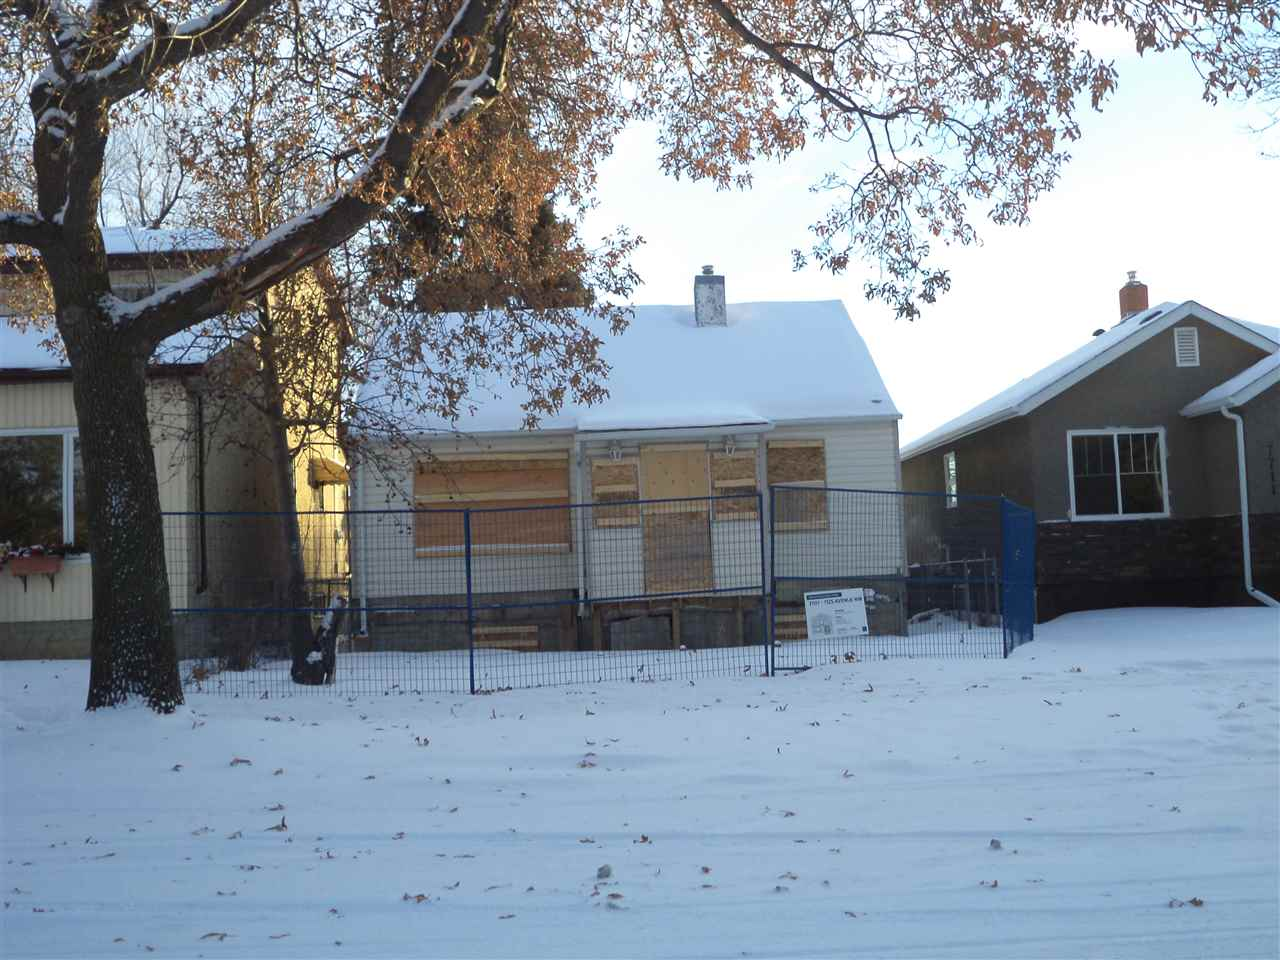 7707 112S Avenue, at $269,900